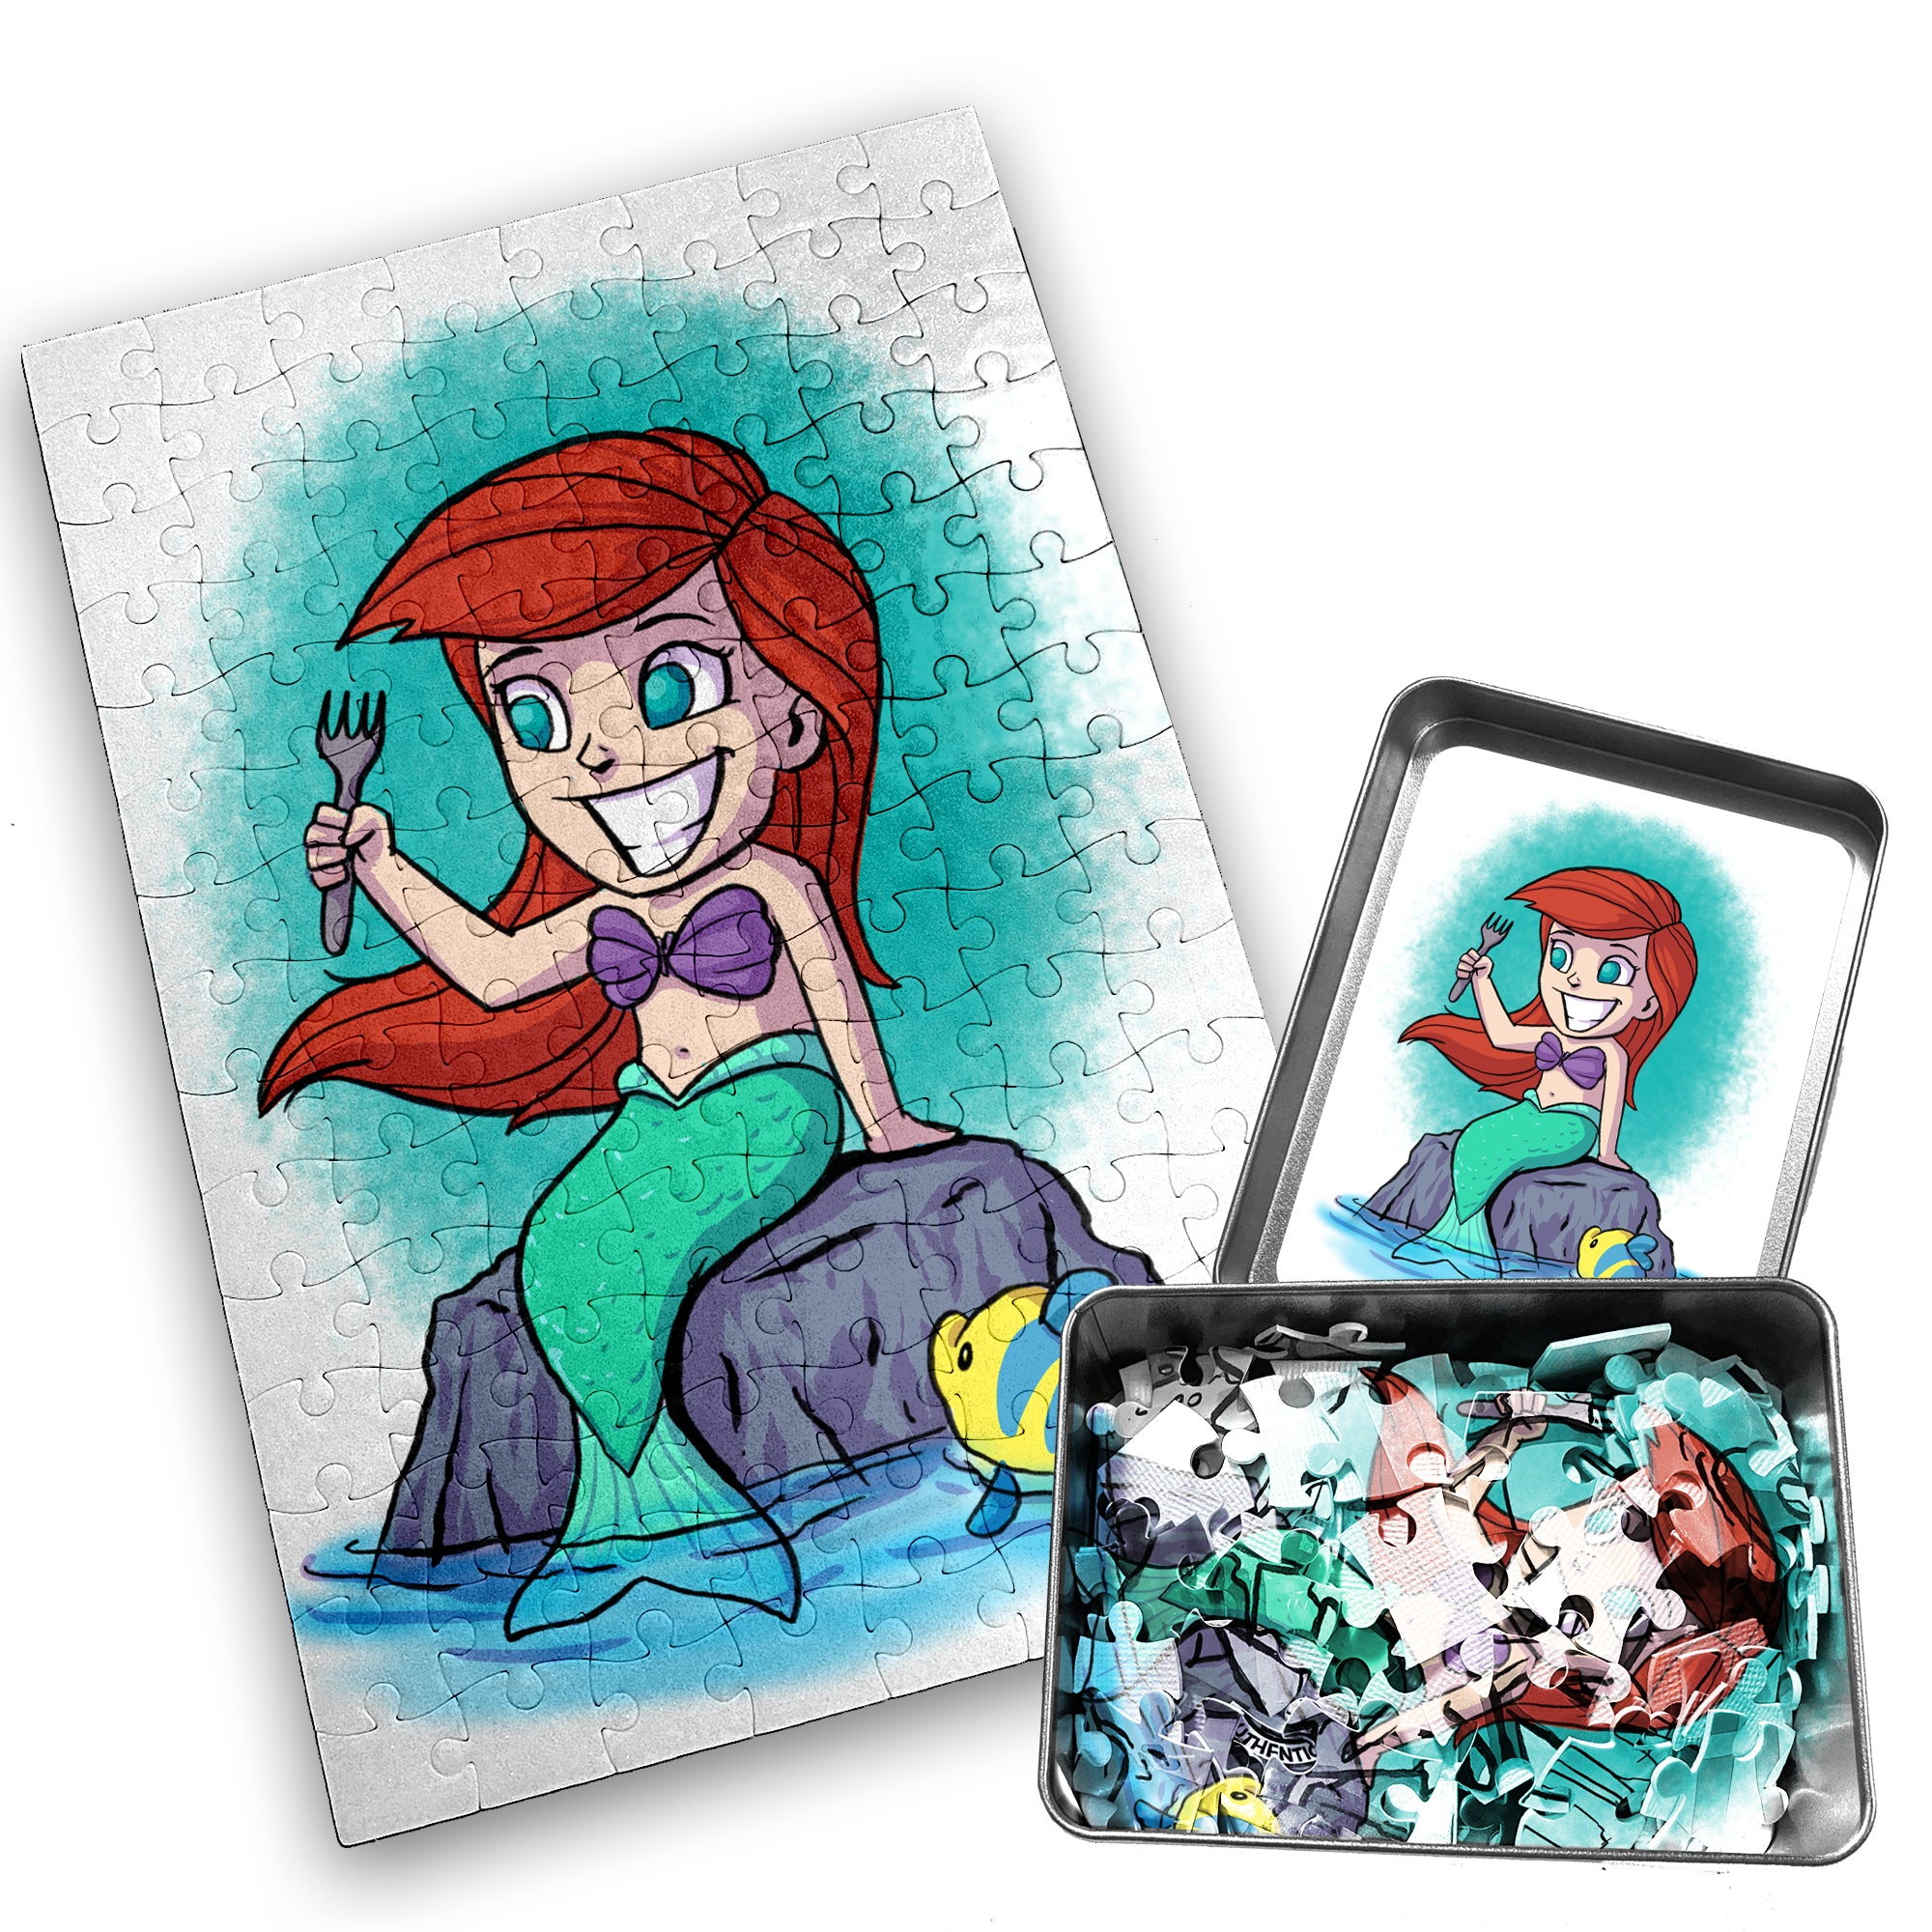 Ariel - Character - 120 Piece Jigsaw Puzzle